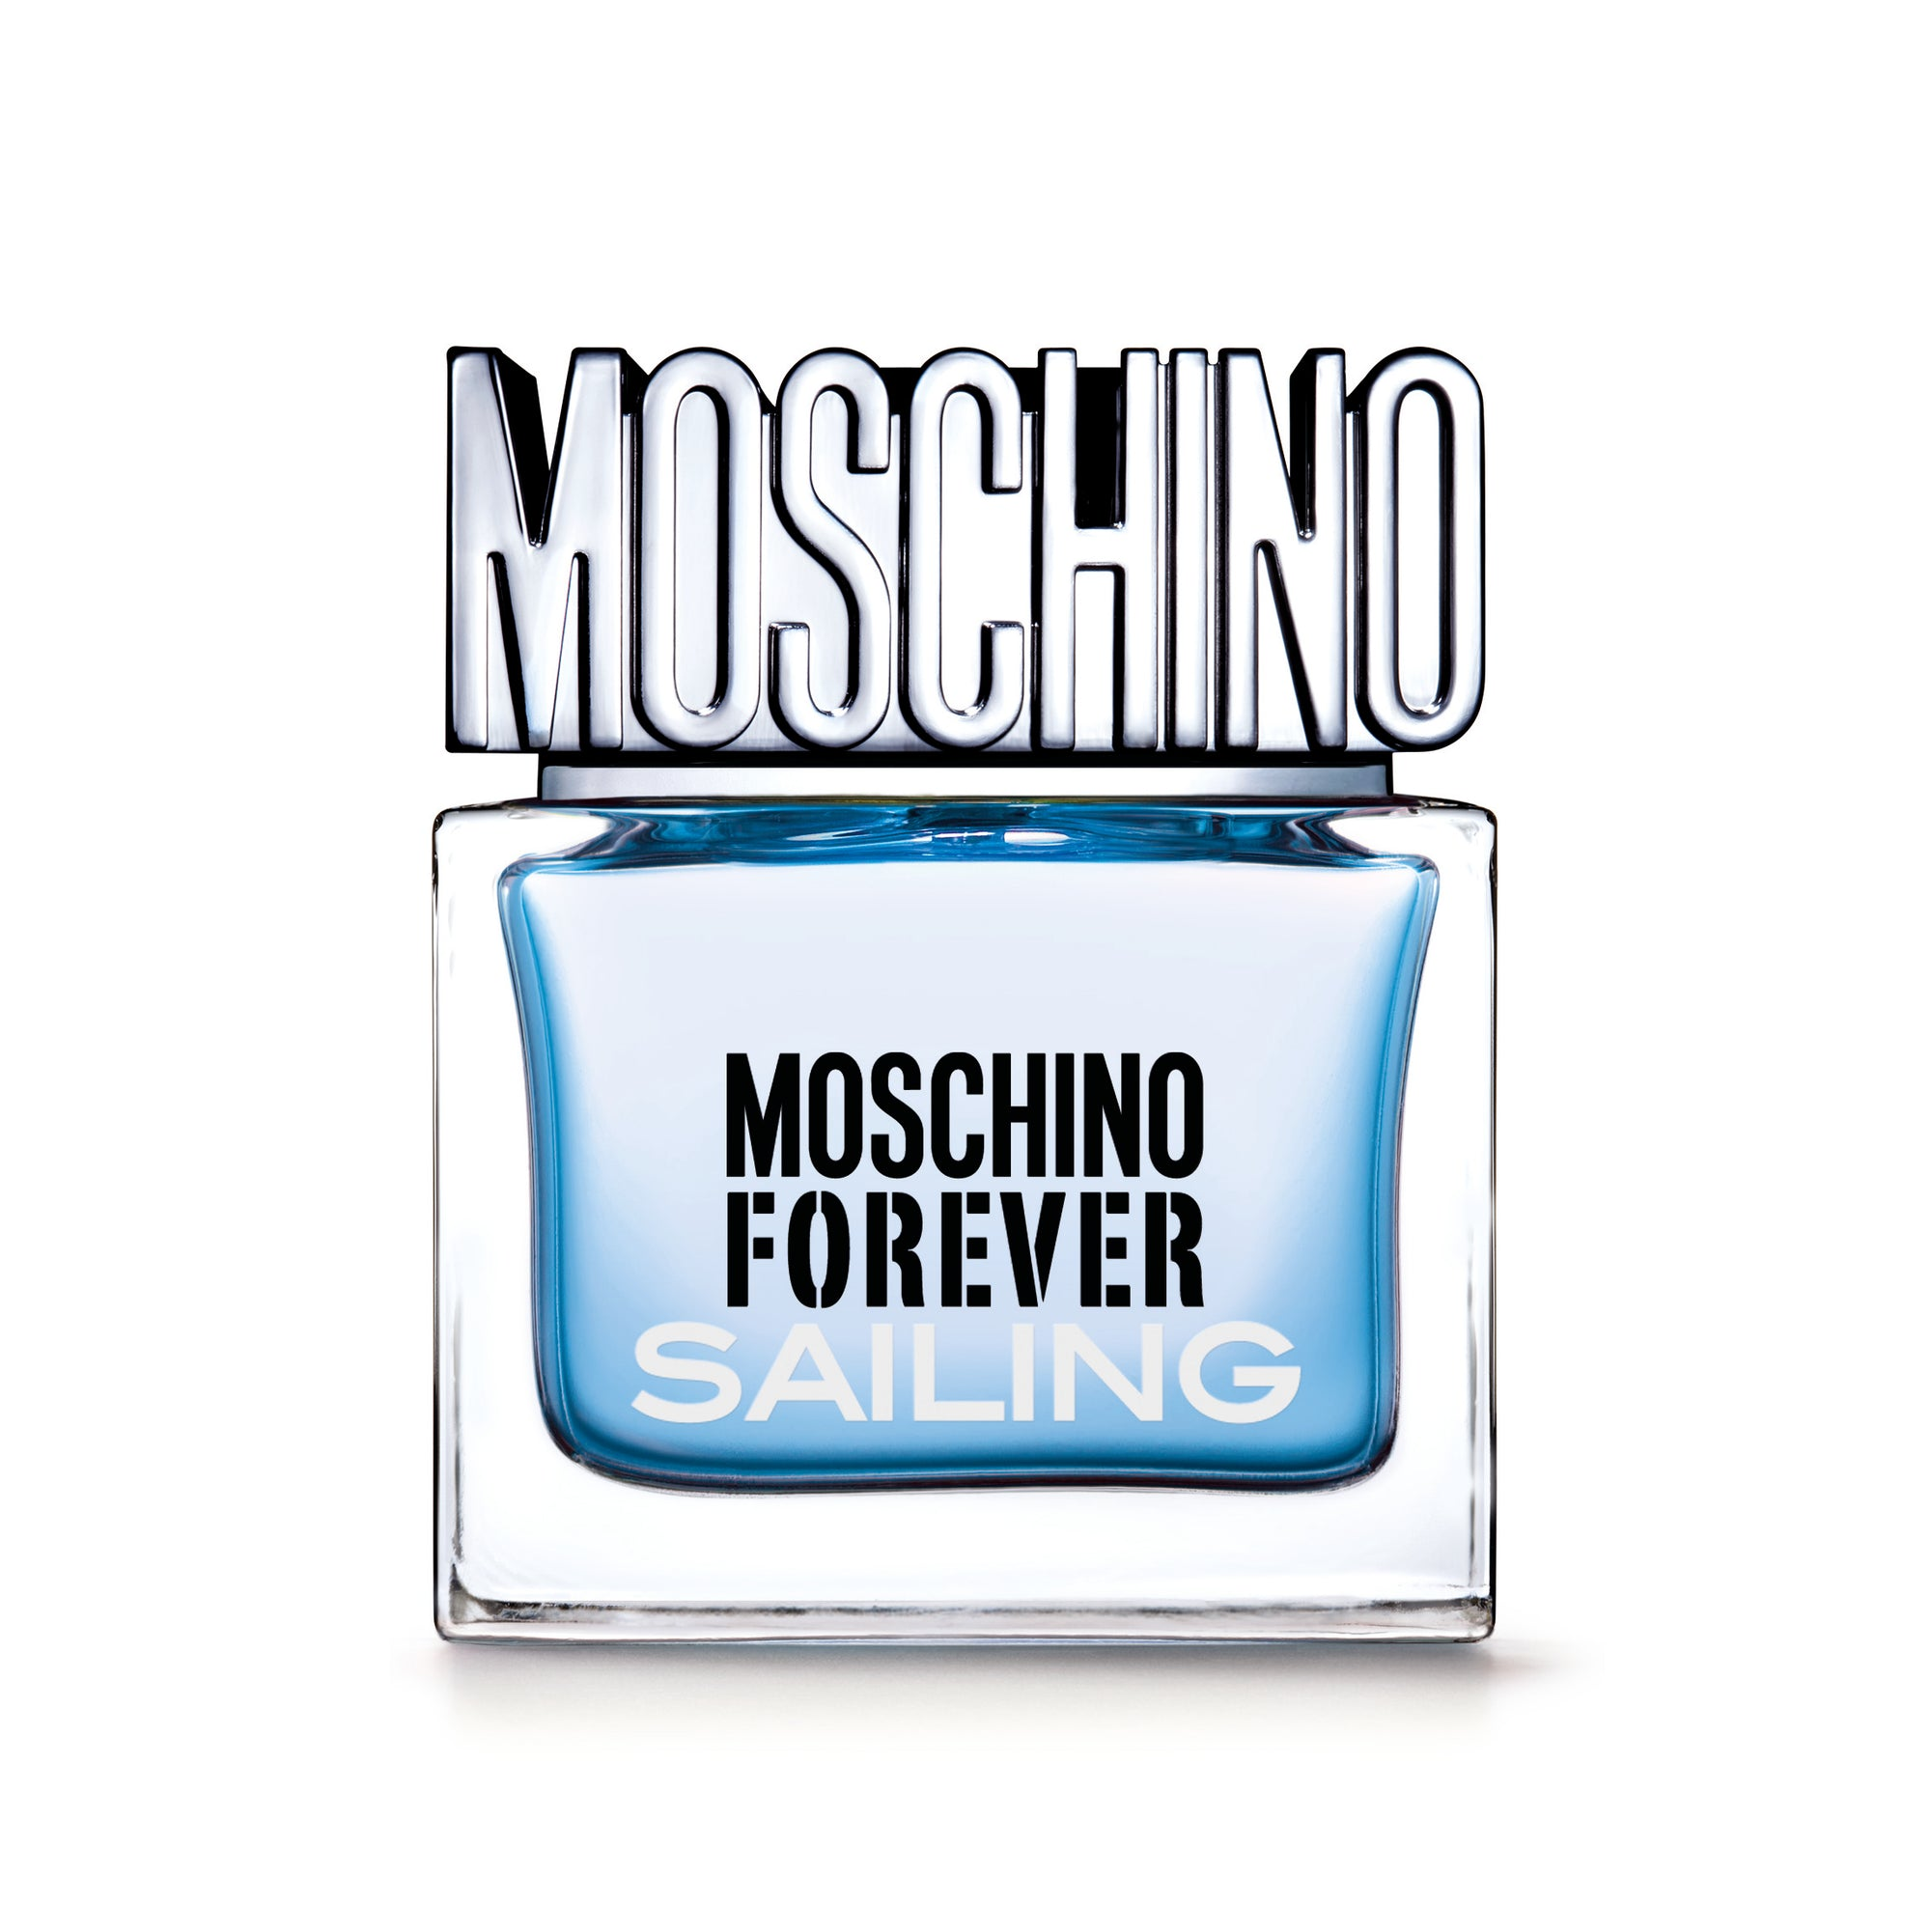 Moschino Forever Sailing - For Him